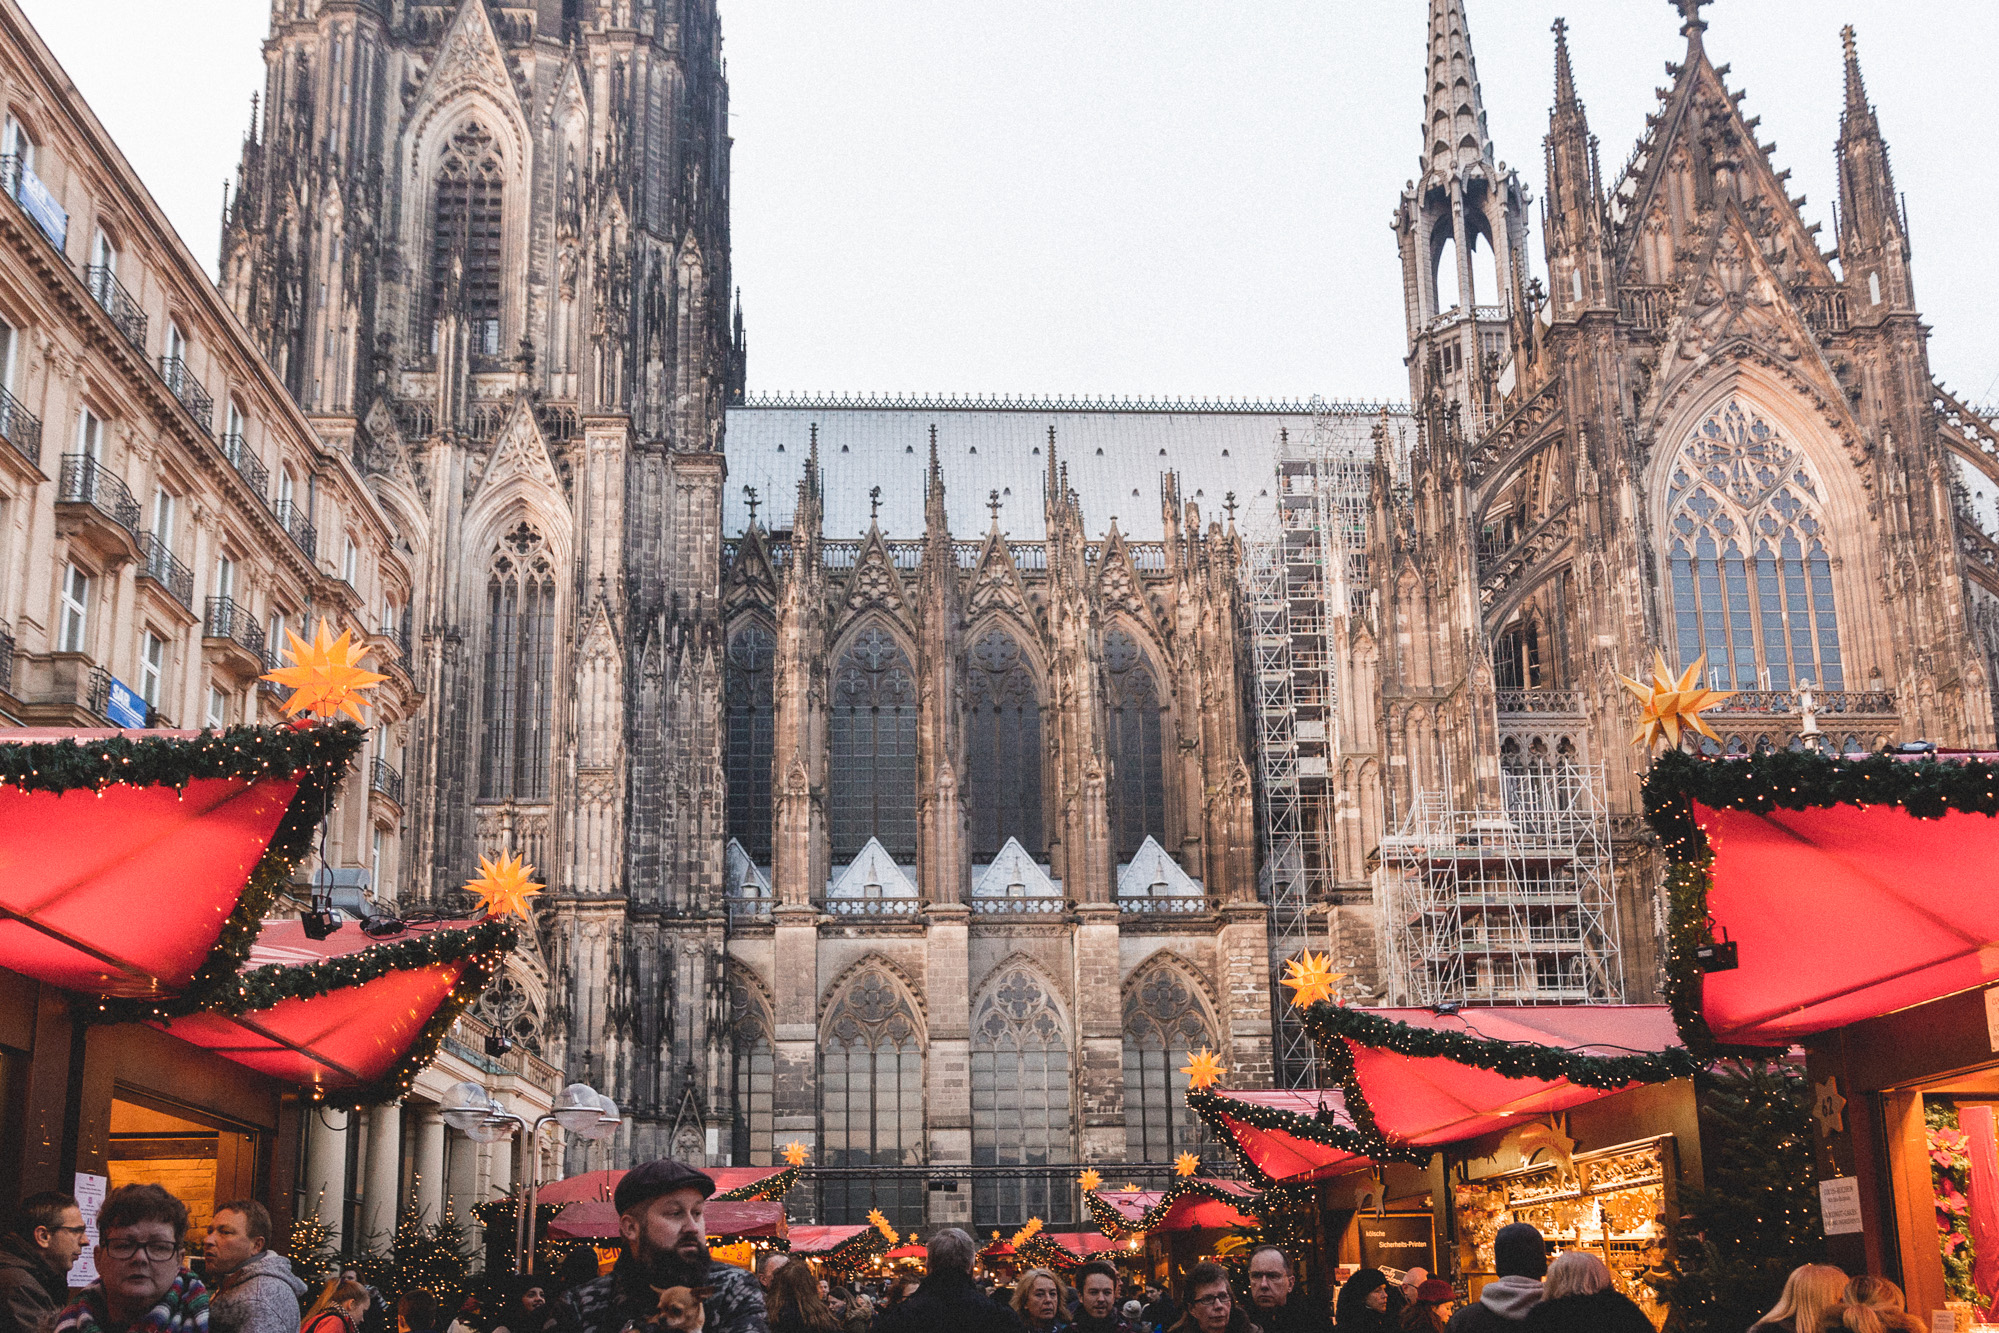 christmas market stalls at the cologne koln market in germany